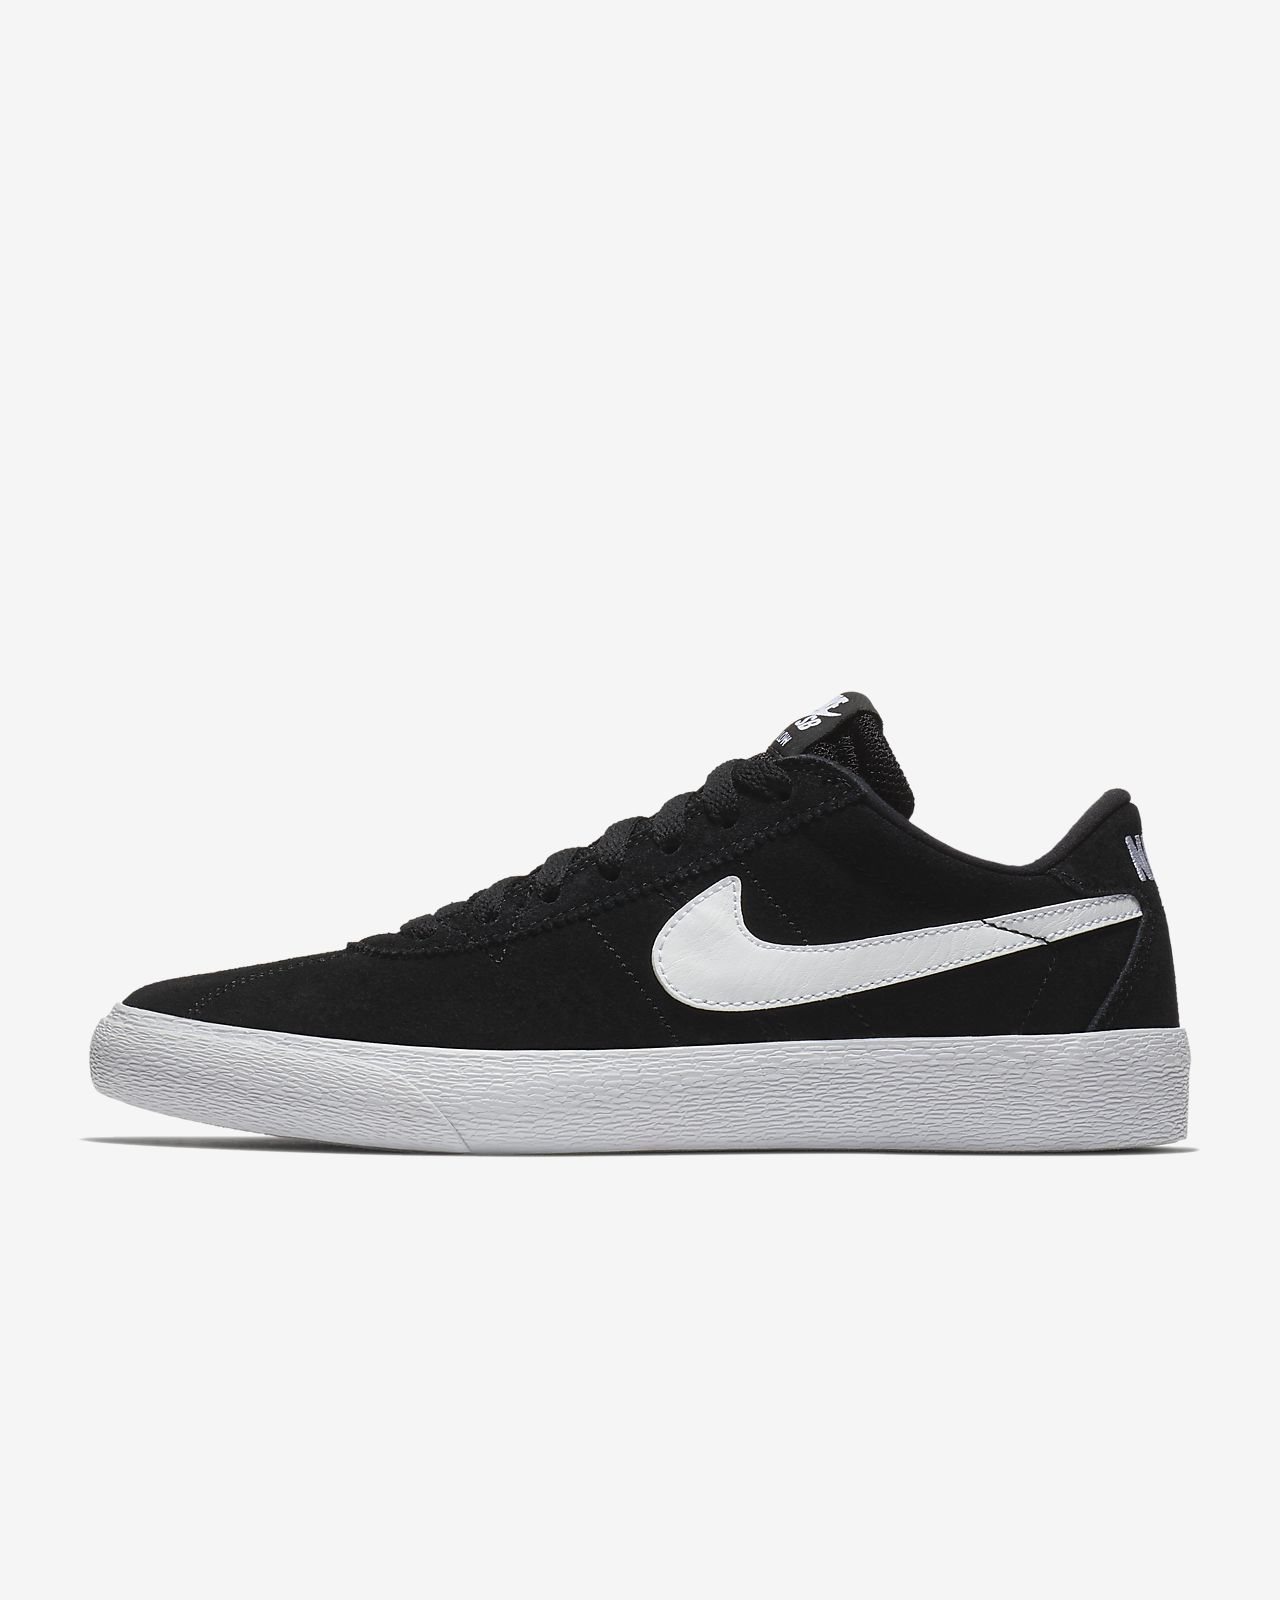 on sale 3f3fe 19a49 Women s Skateboarding Shoe. Nike SB Zoom Bruin Low